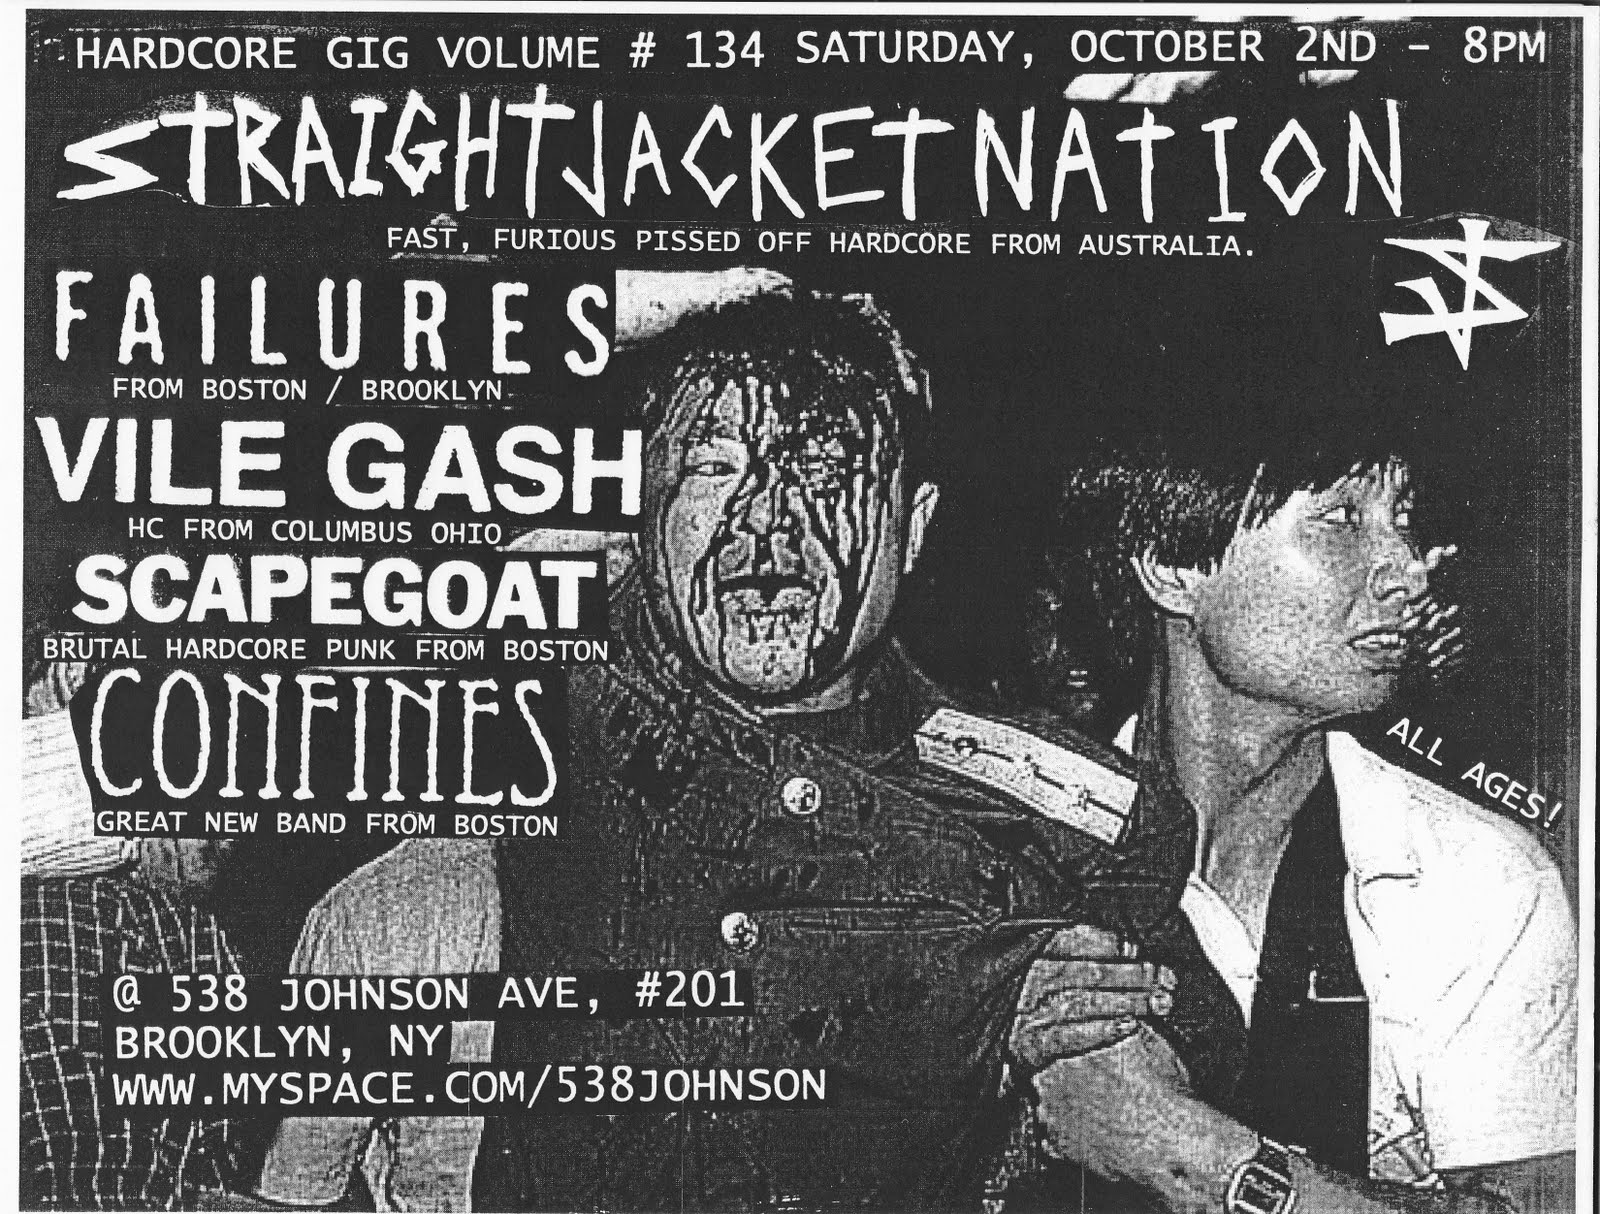 Hardcore Gig Volume: STRAIGHTJACKET NATION VILE GASH FAILURES